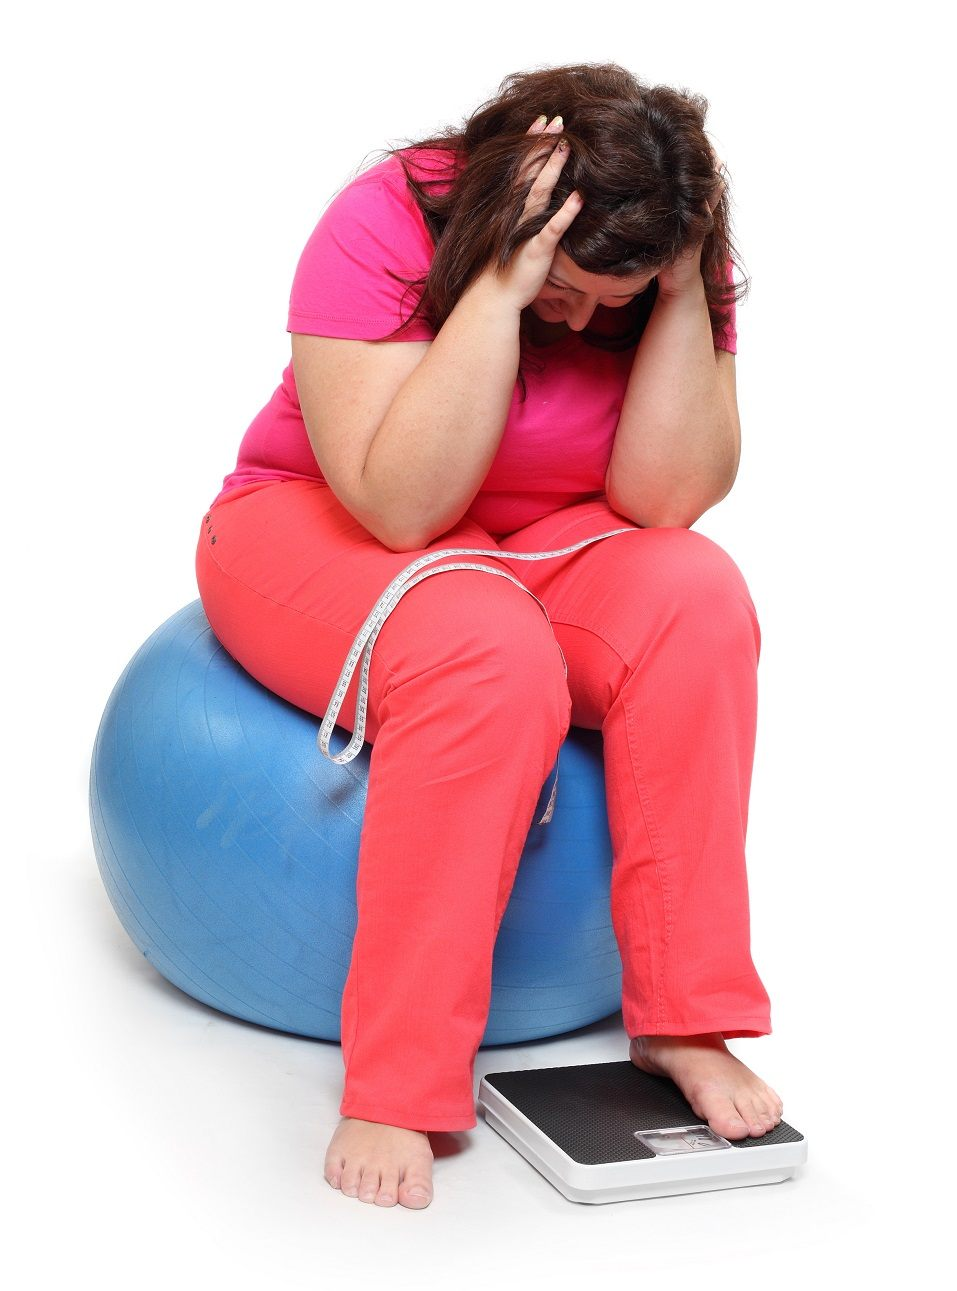 Overweight woman sitting on exercise ball with scale